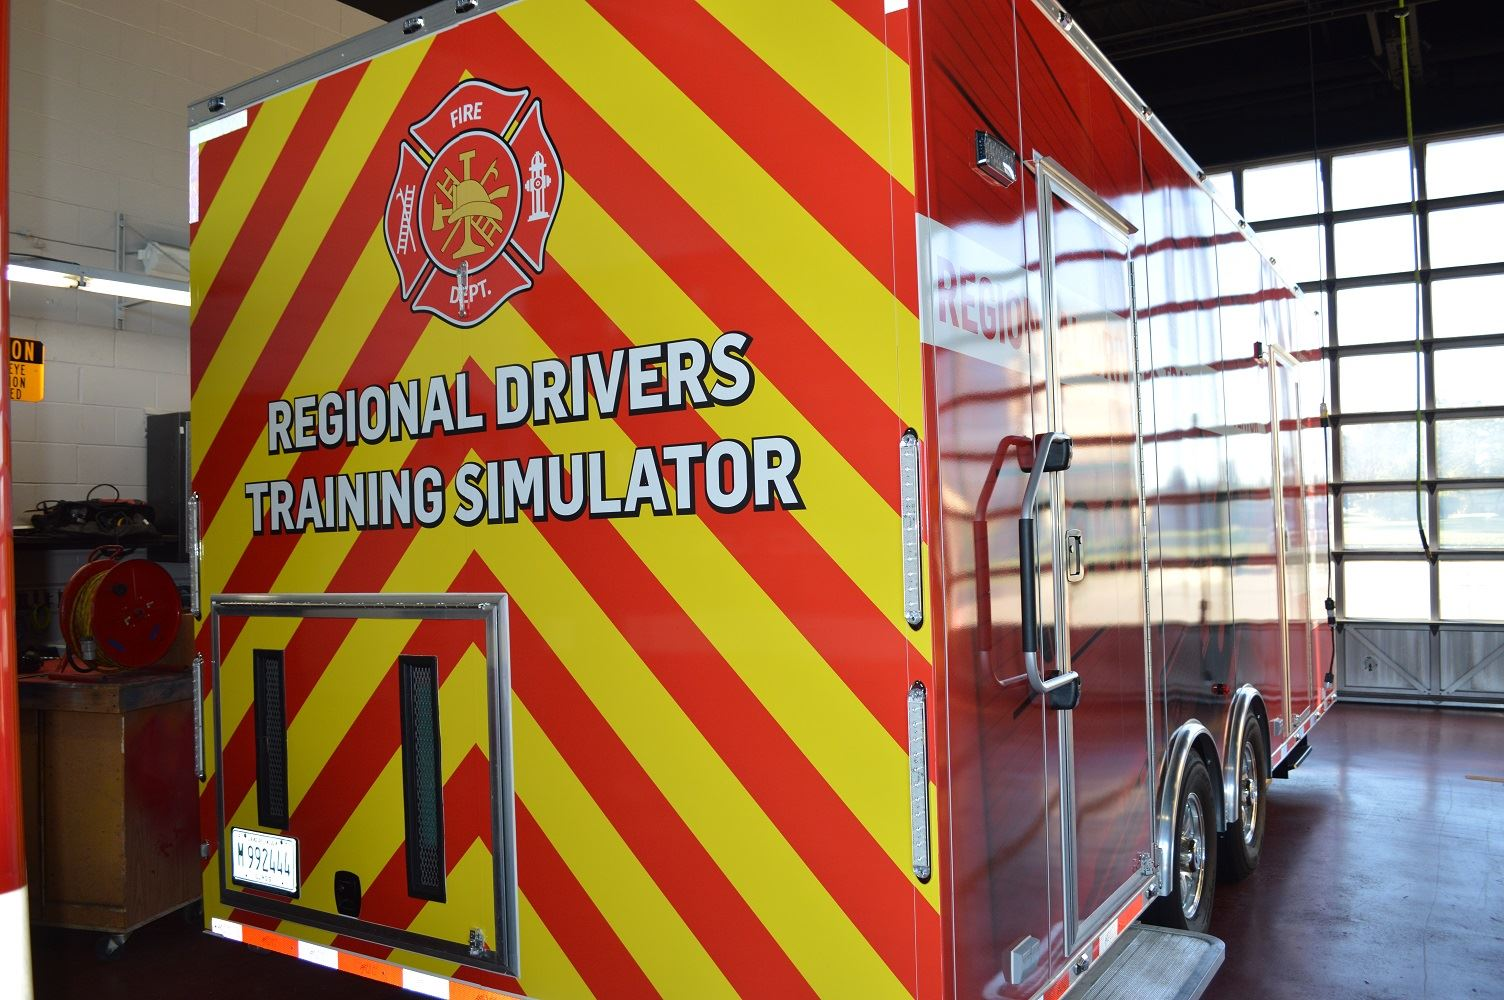 The Regional Driving Simulator allows firefighters to train in simulated adverse weather and driving conditions.